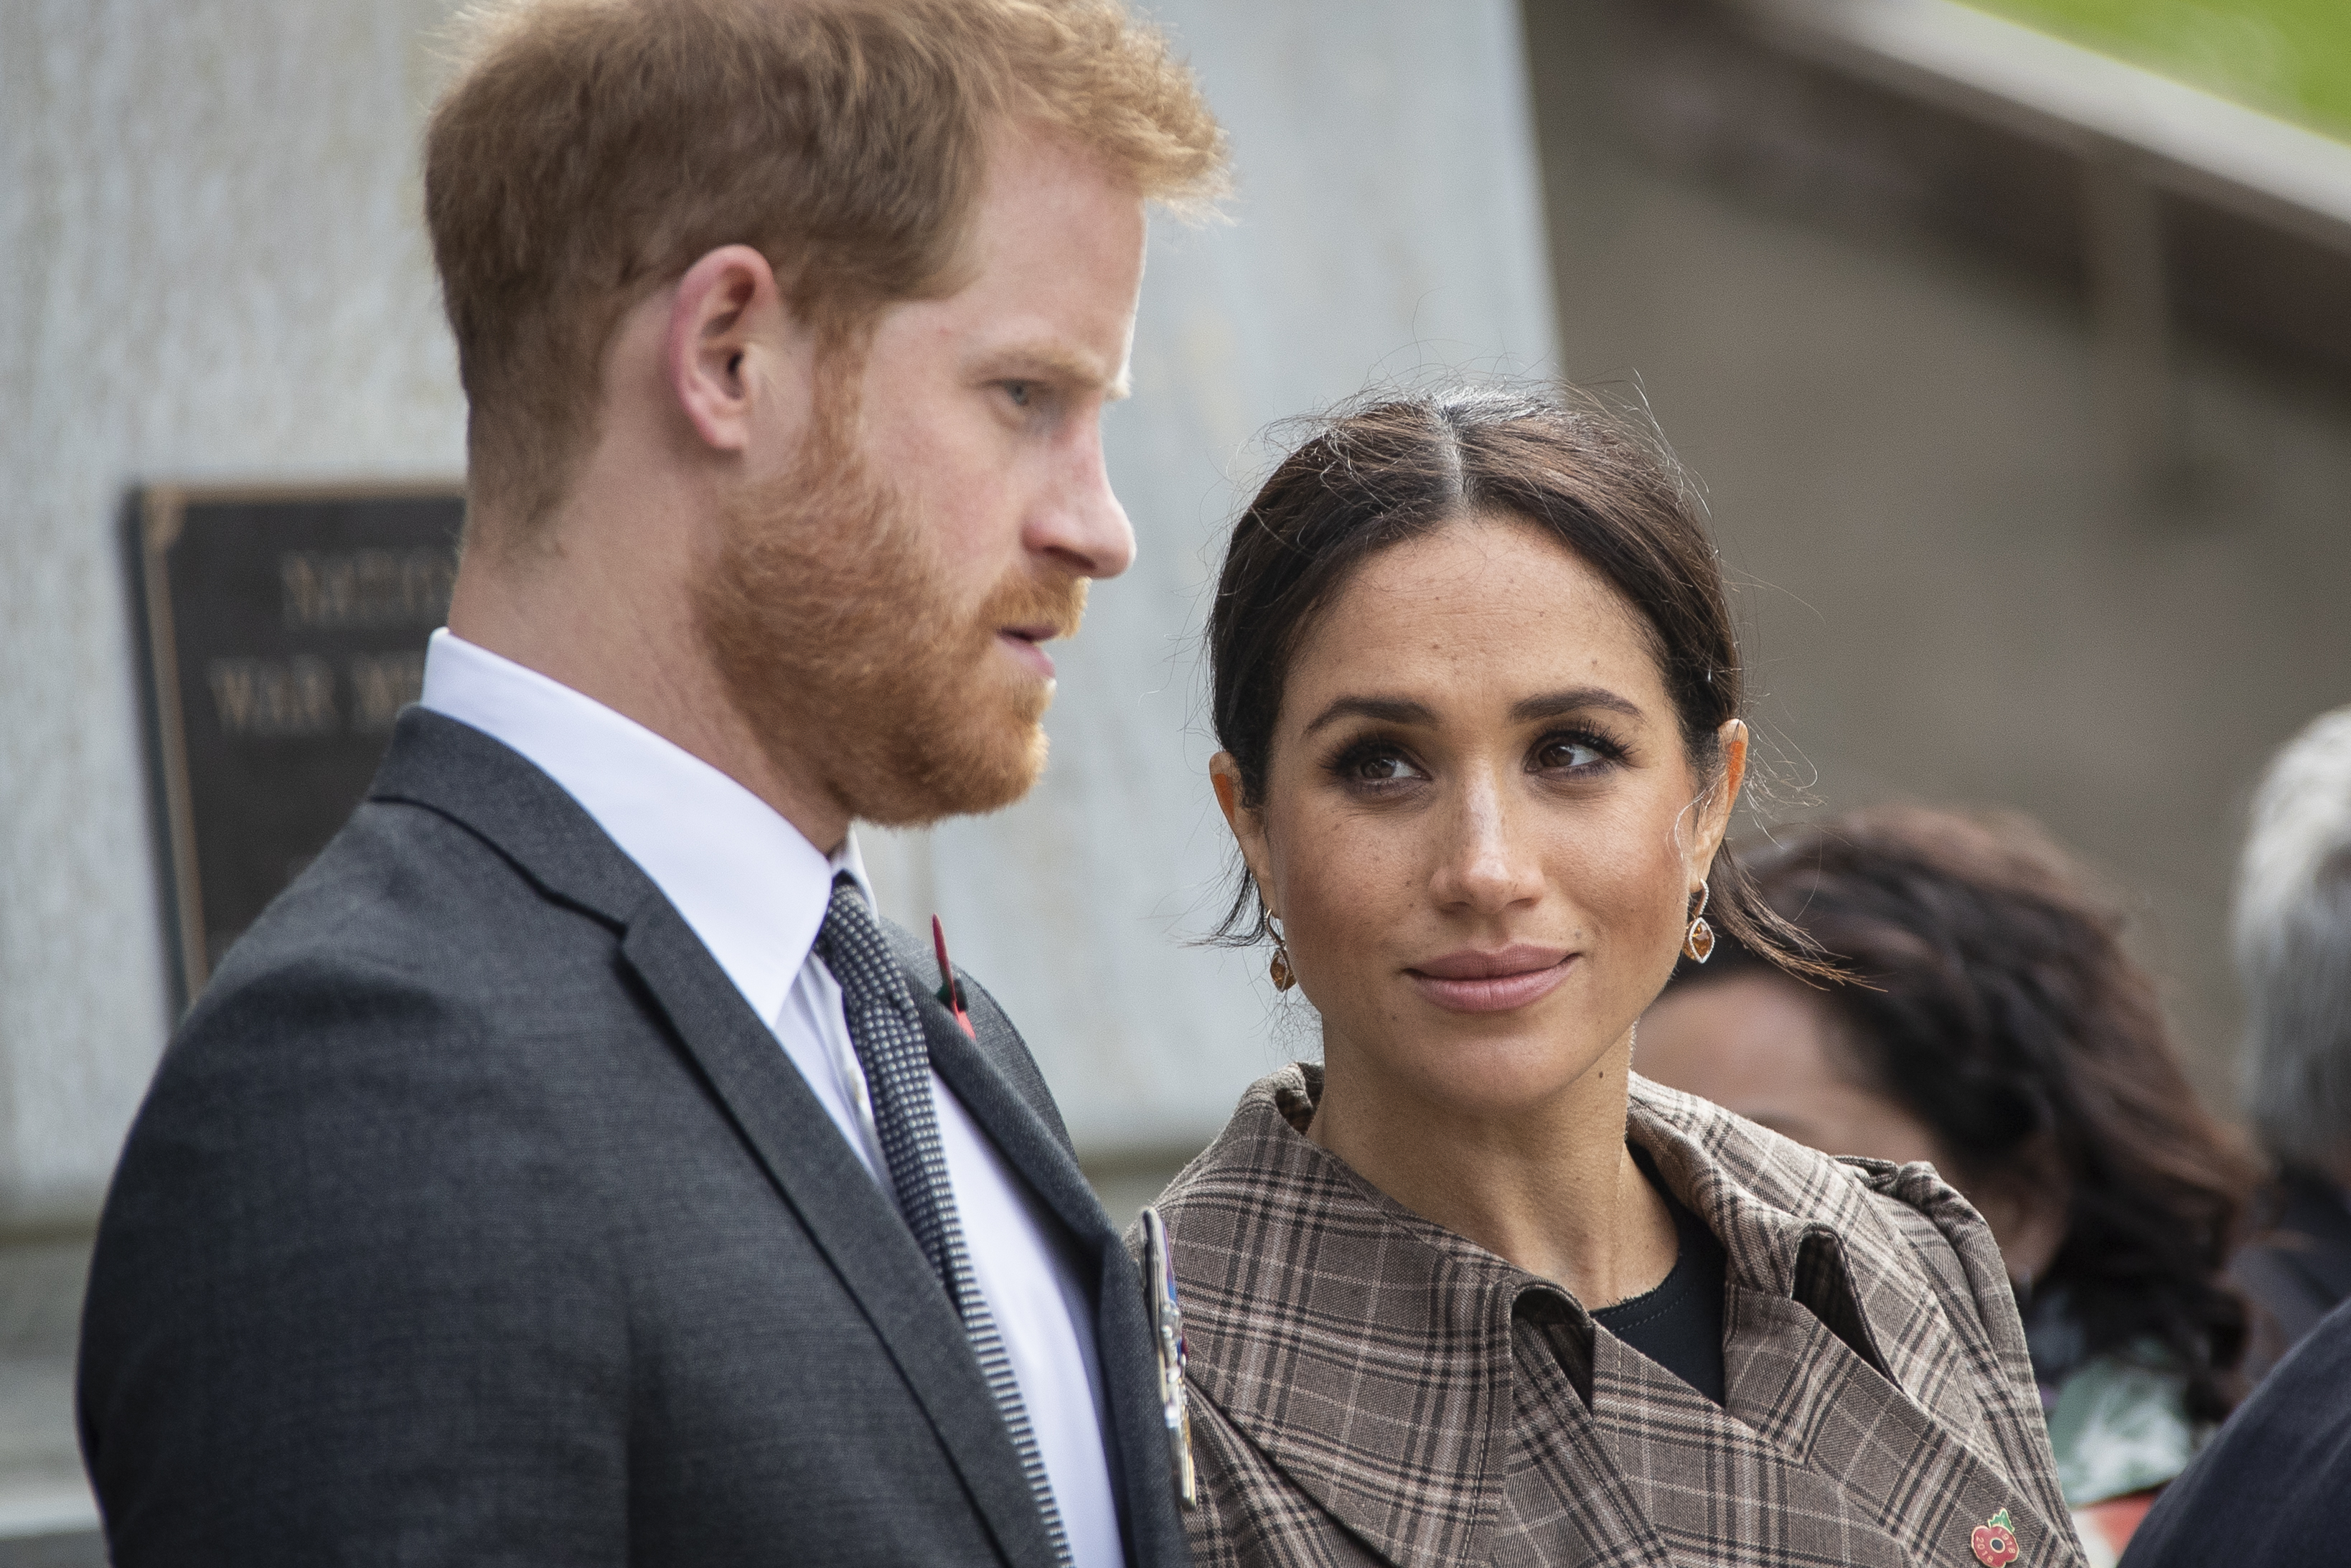 Meghan Markle had to leave her dog behind in Canada because he 'never took to' Prince Harry